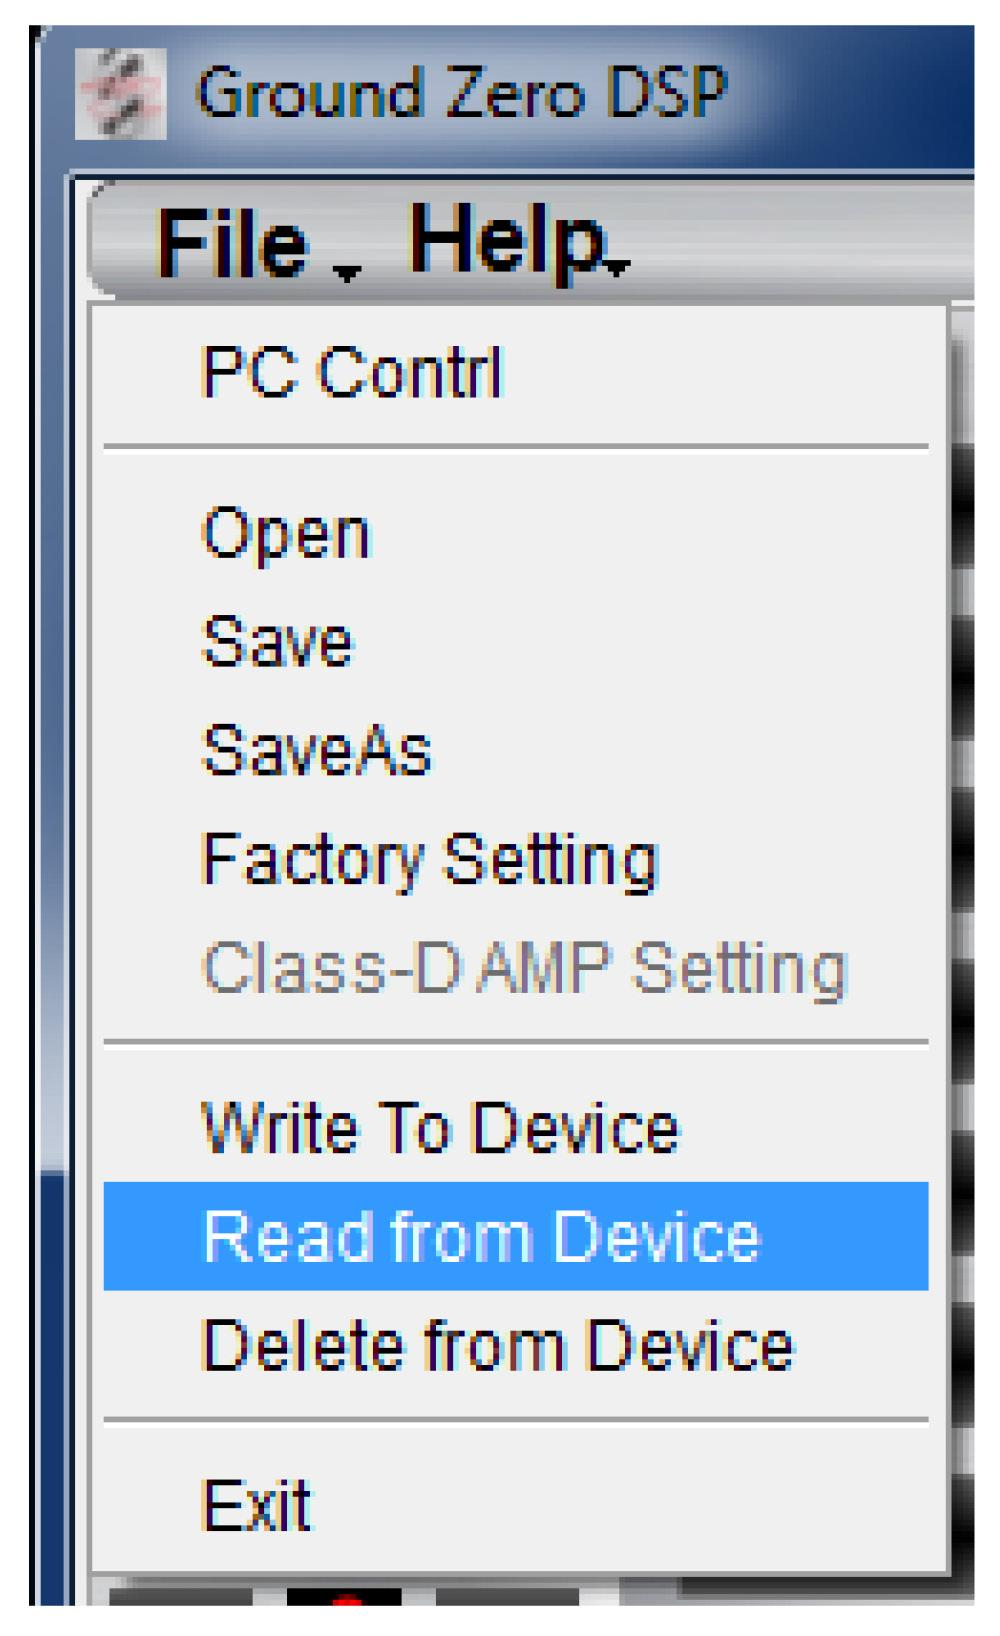 Dsp Series Amplifier Pdf Wiring Diagrams Additionally Mb Quart Crossover Diagram On Web File Dropdown Menu Pc Contrl Opens The Select Com Window Page 9 Open